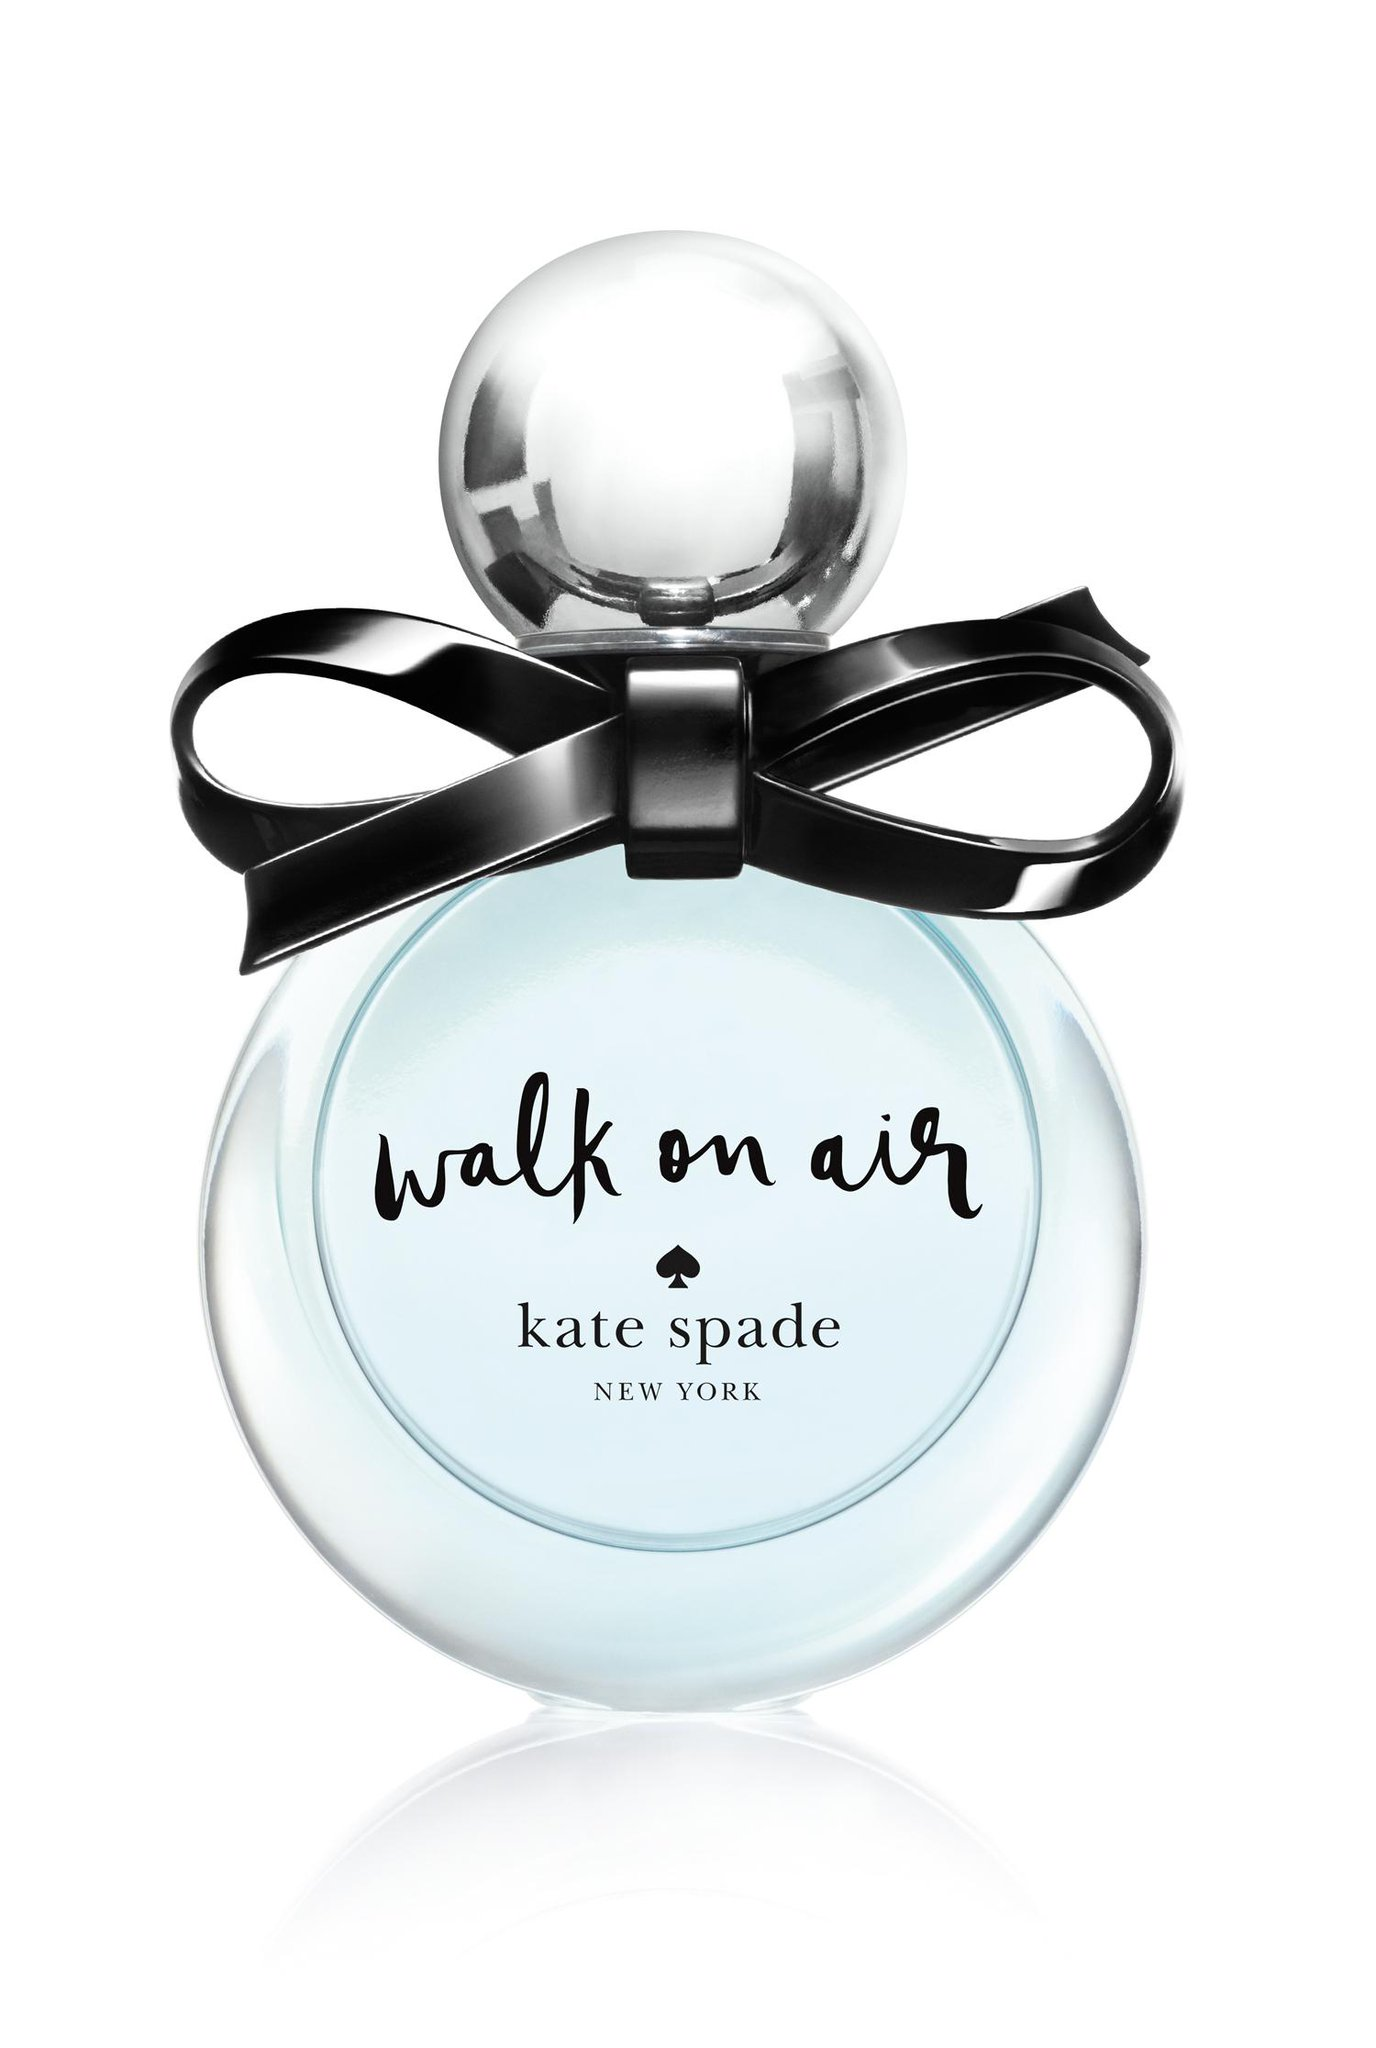 Kate Spade New York to launch its Walk On Air fragrance, see more beauty news here: http://t.co/PvTIR72DP1 #bbloggers http://t.co/wRMGxmyb1o